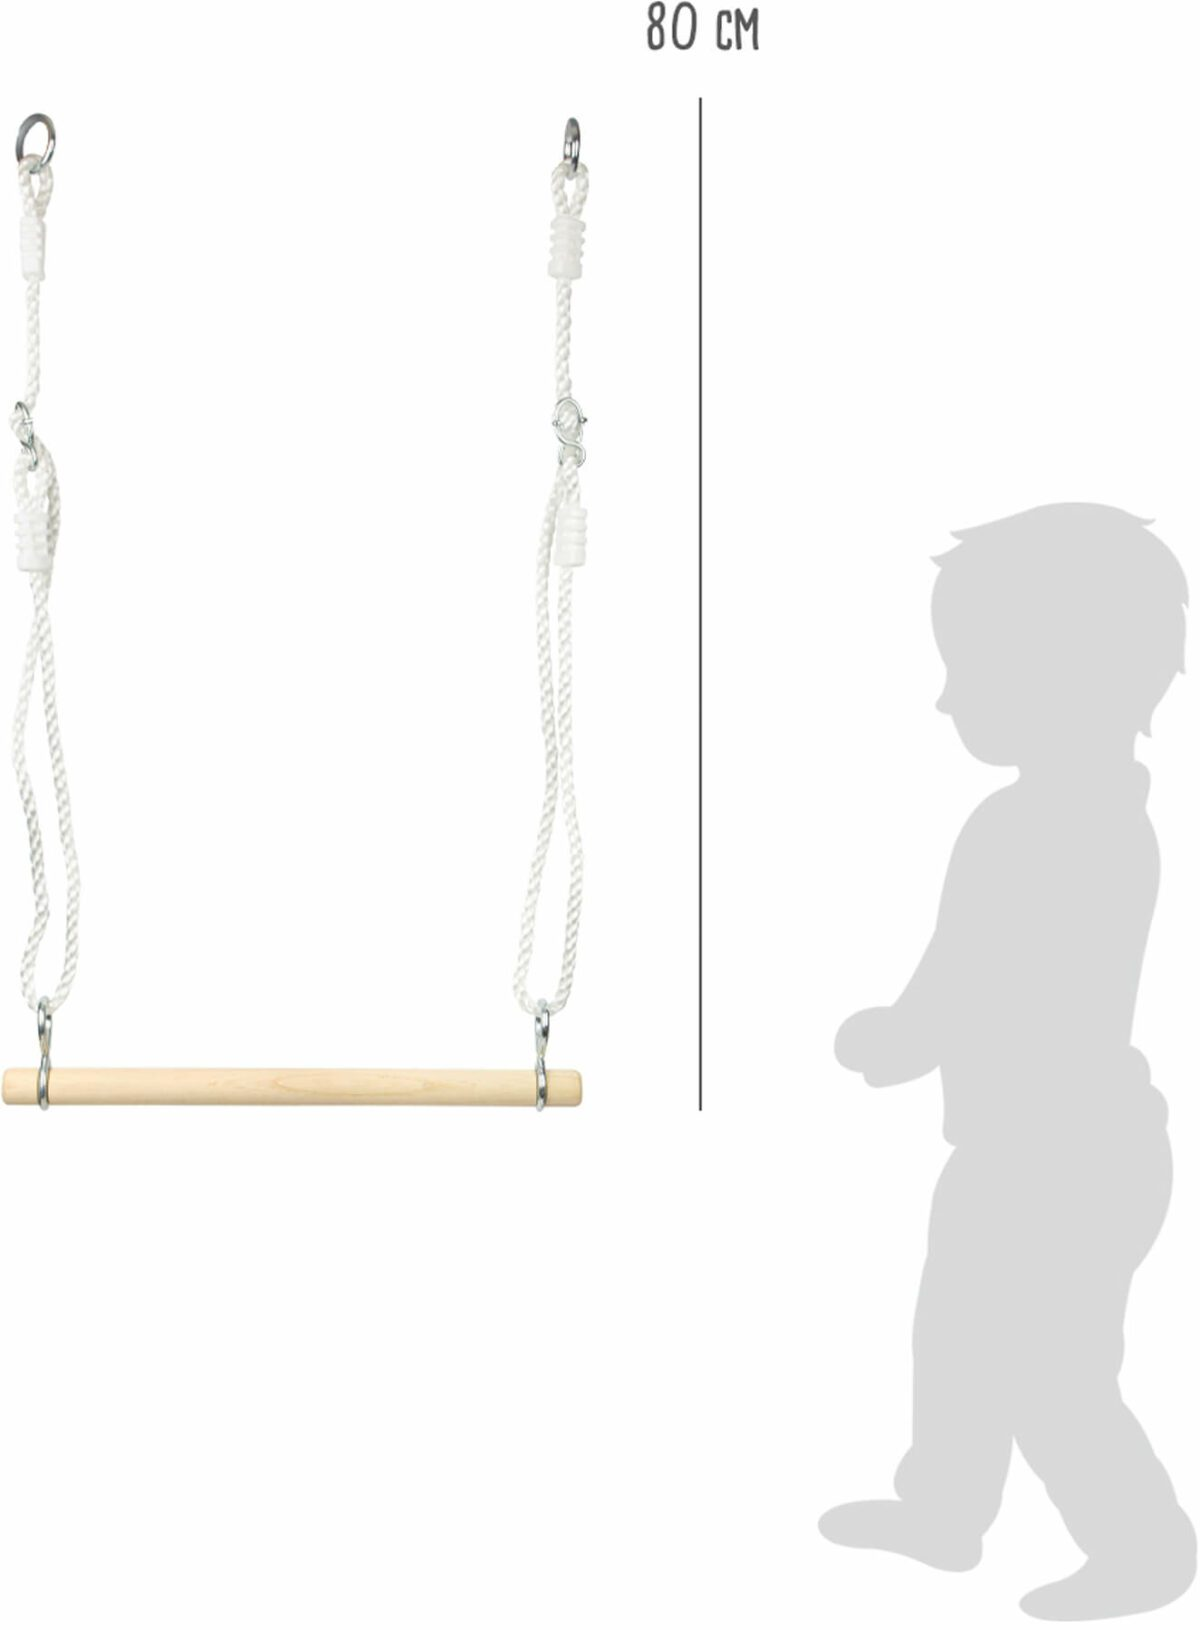 Houten Trapeze Small Foot afm.